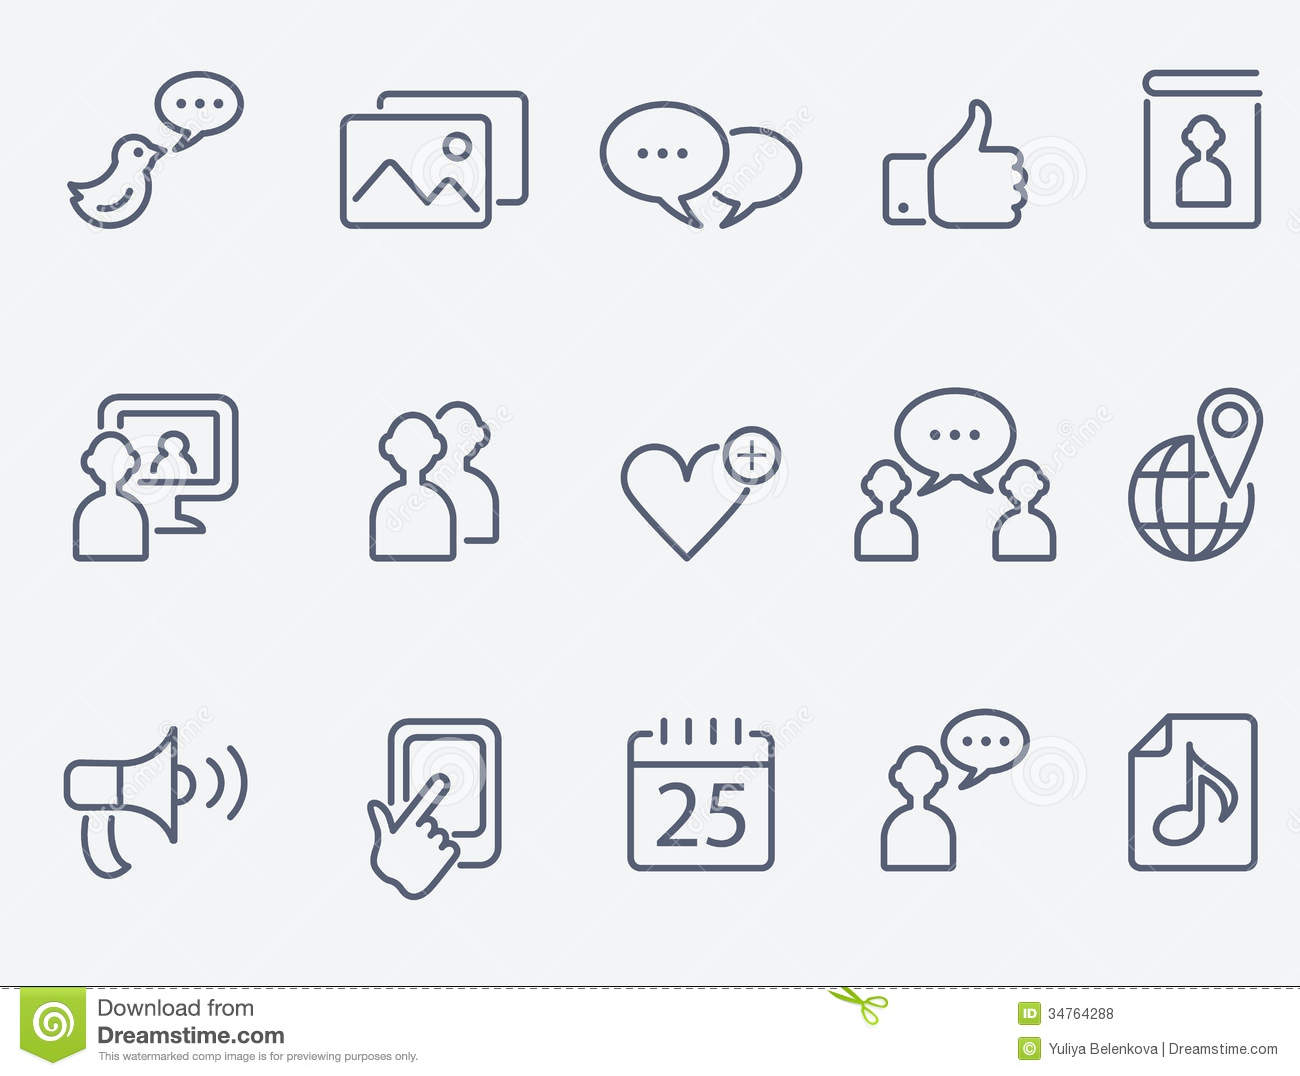 Generic social media clipart jpg black and white Generic social media clipart - ClipartFest jpg black and white